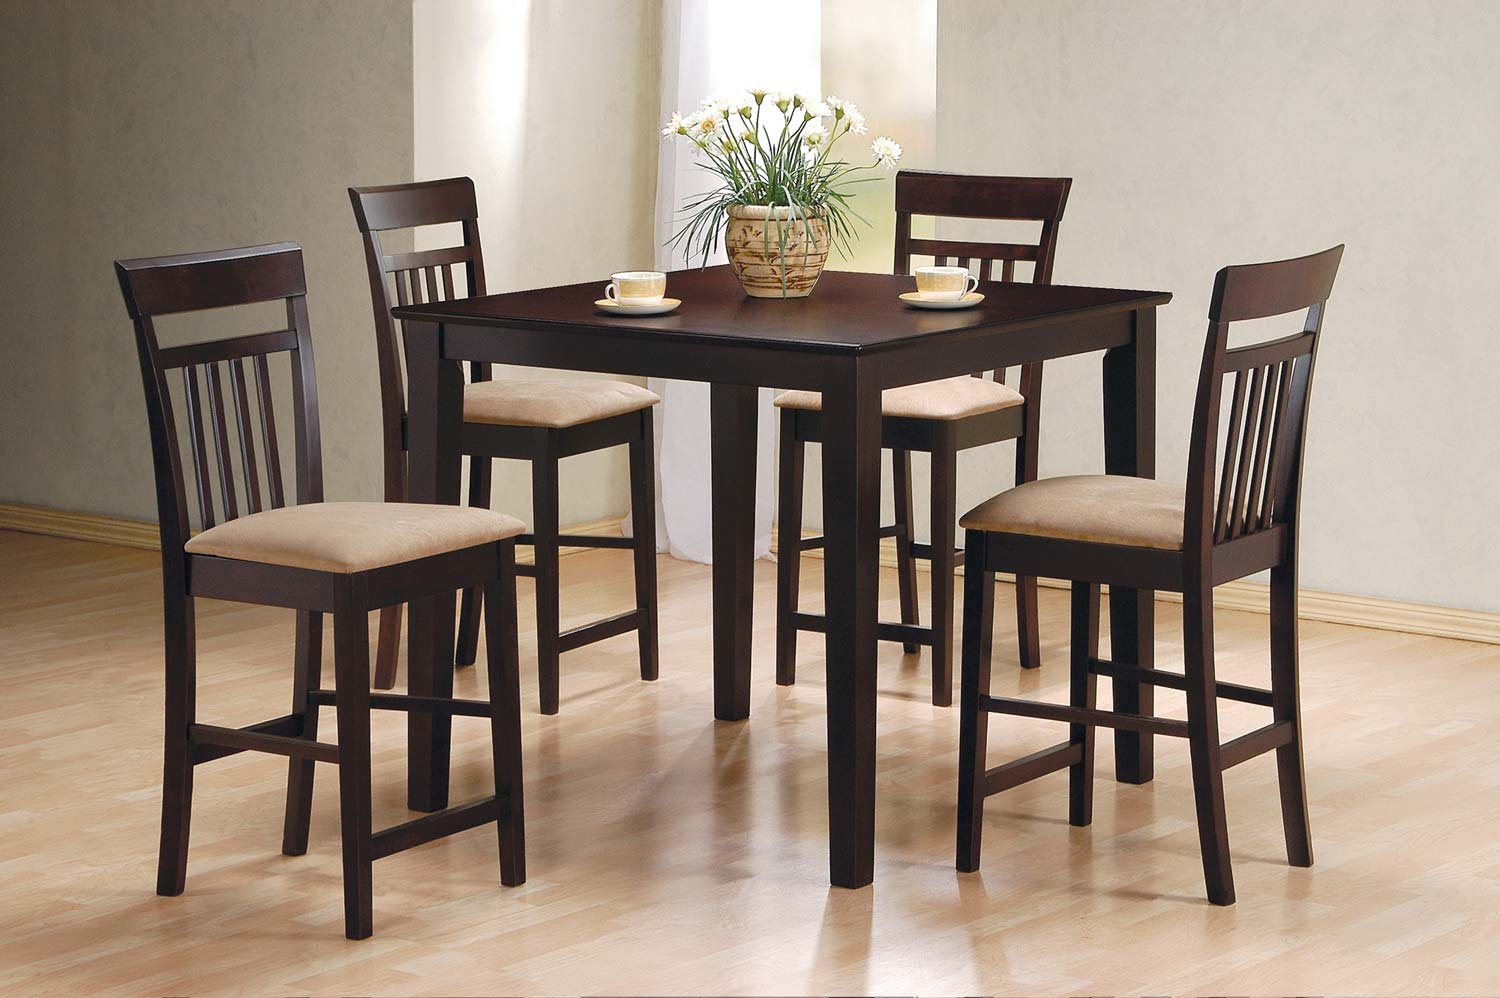 Beau Coaster 150041 5PC Counter Height Dining Set   Cappuccino